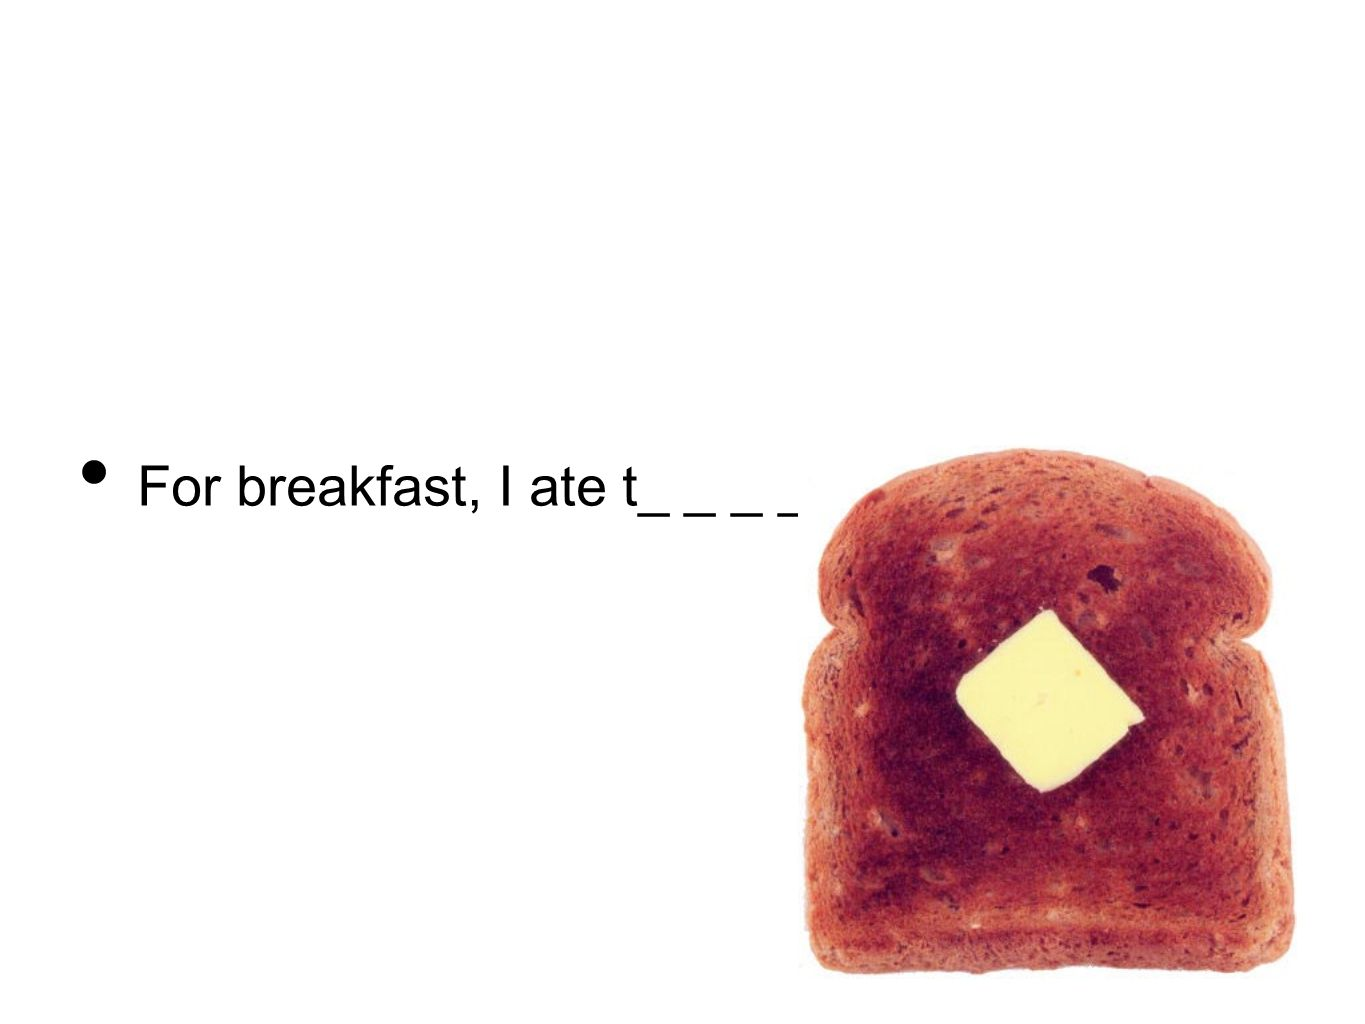 For breakfast, I ate t_ _ _ _.